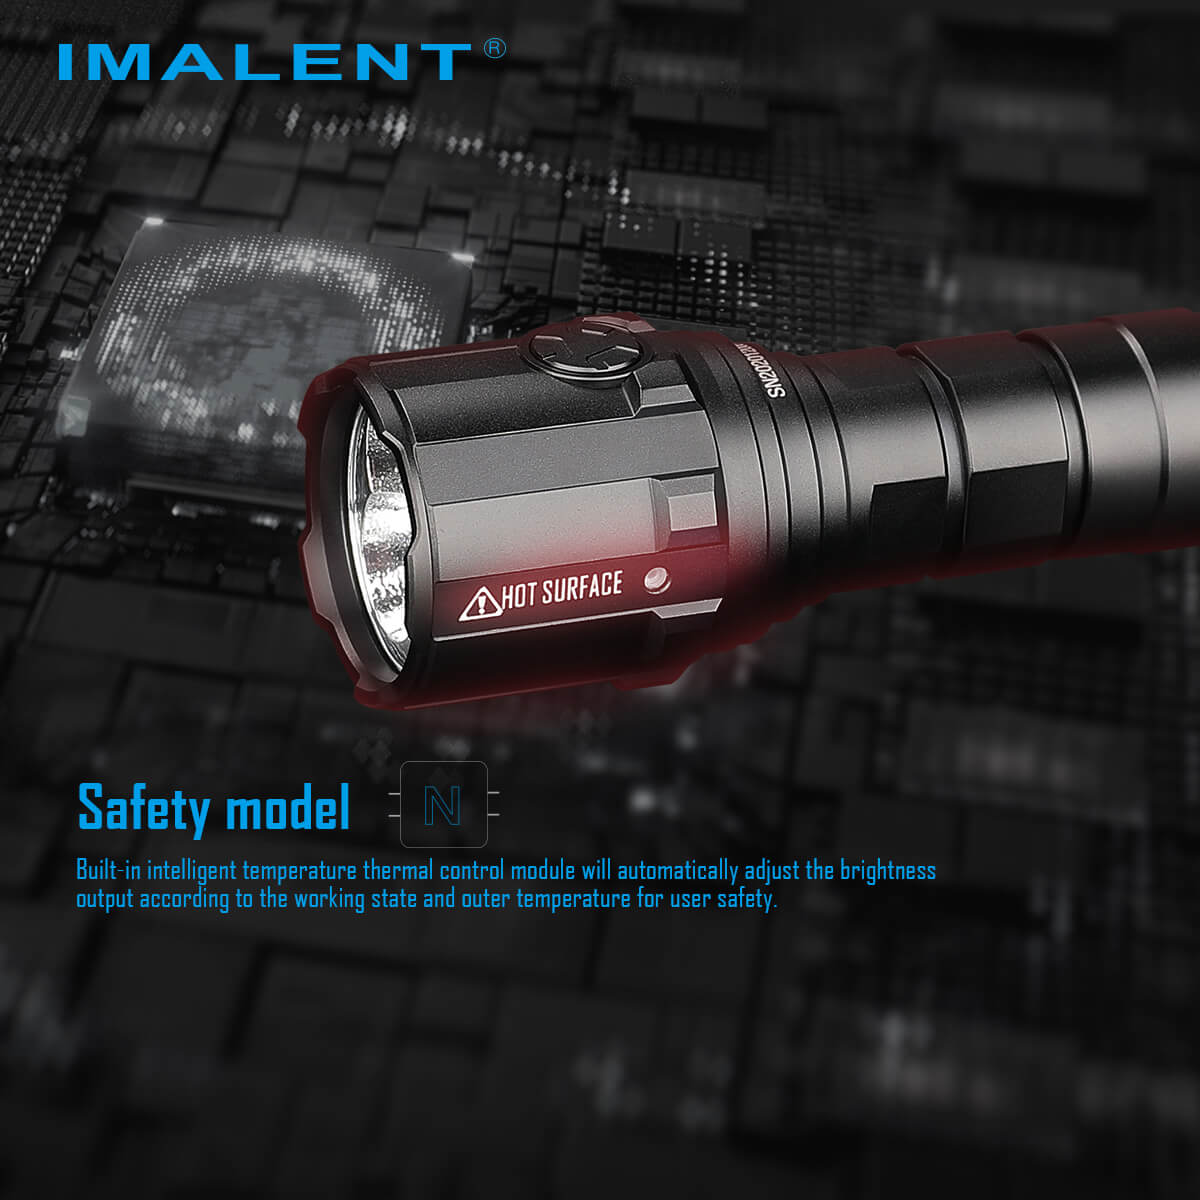 IMALENT R30C EDC LED Flashlight 9000 Lumens Type-C USB Rechargeable Flashlight by 21700 Battery for Hunting, Search and Rescue enlarge